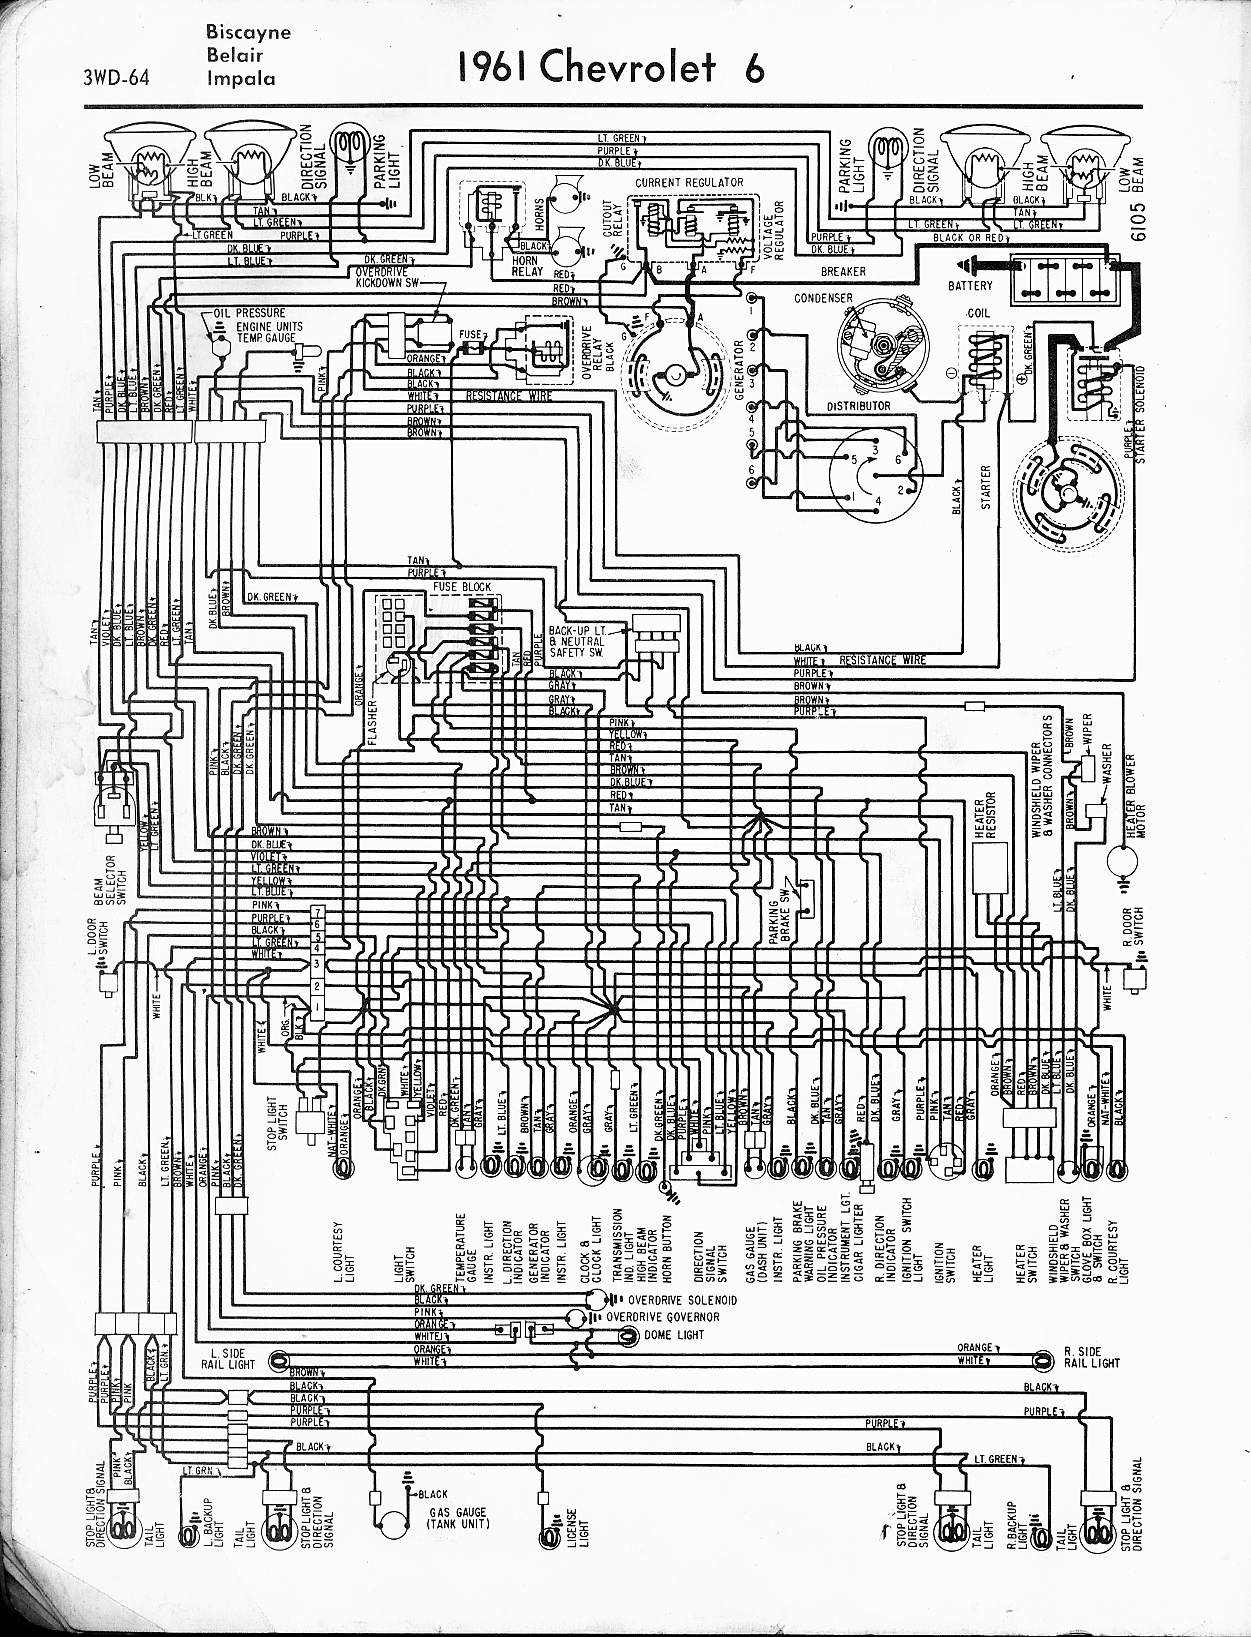 57 65 chevy wiring diagrams rh oldcarmanualproject com 1957 chevy bel air headlight switch wiring diagram 1957 chevy bel air wiring diagram